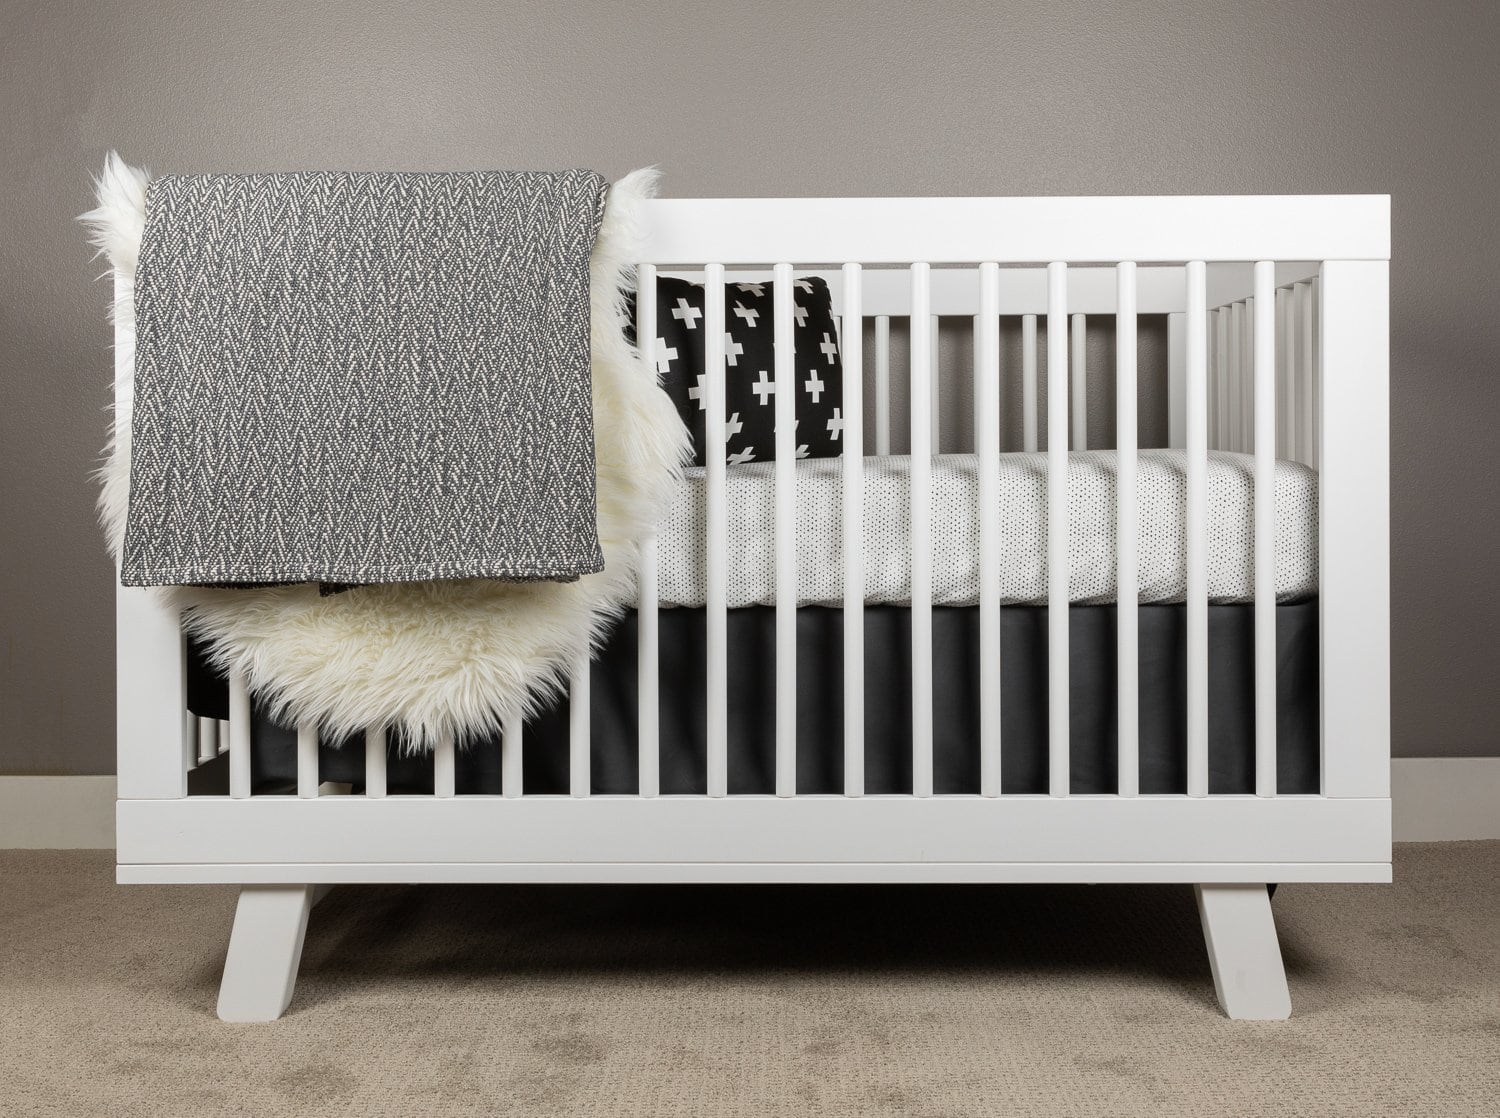 Hearts Crib Bedding Set Black on White-Crib Bedding Set-Jack and Jill Boutique